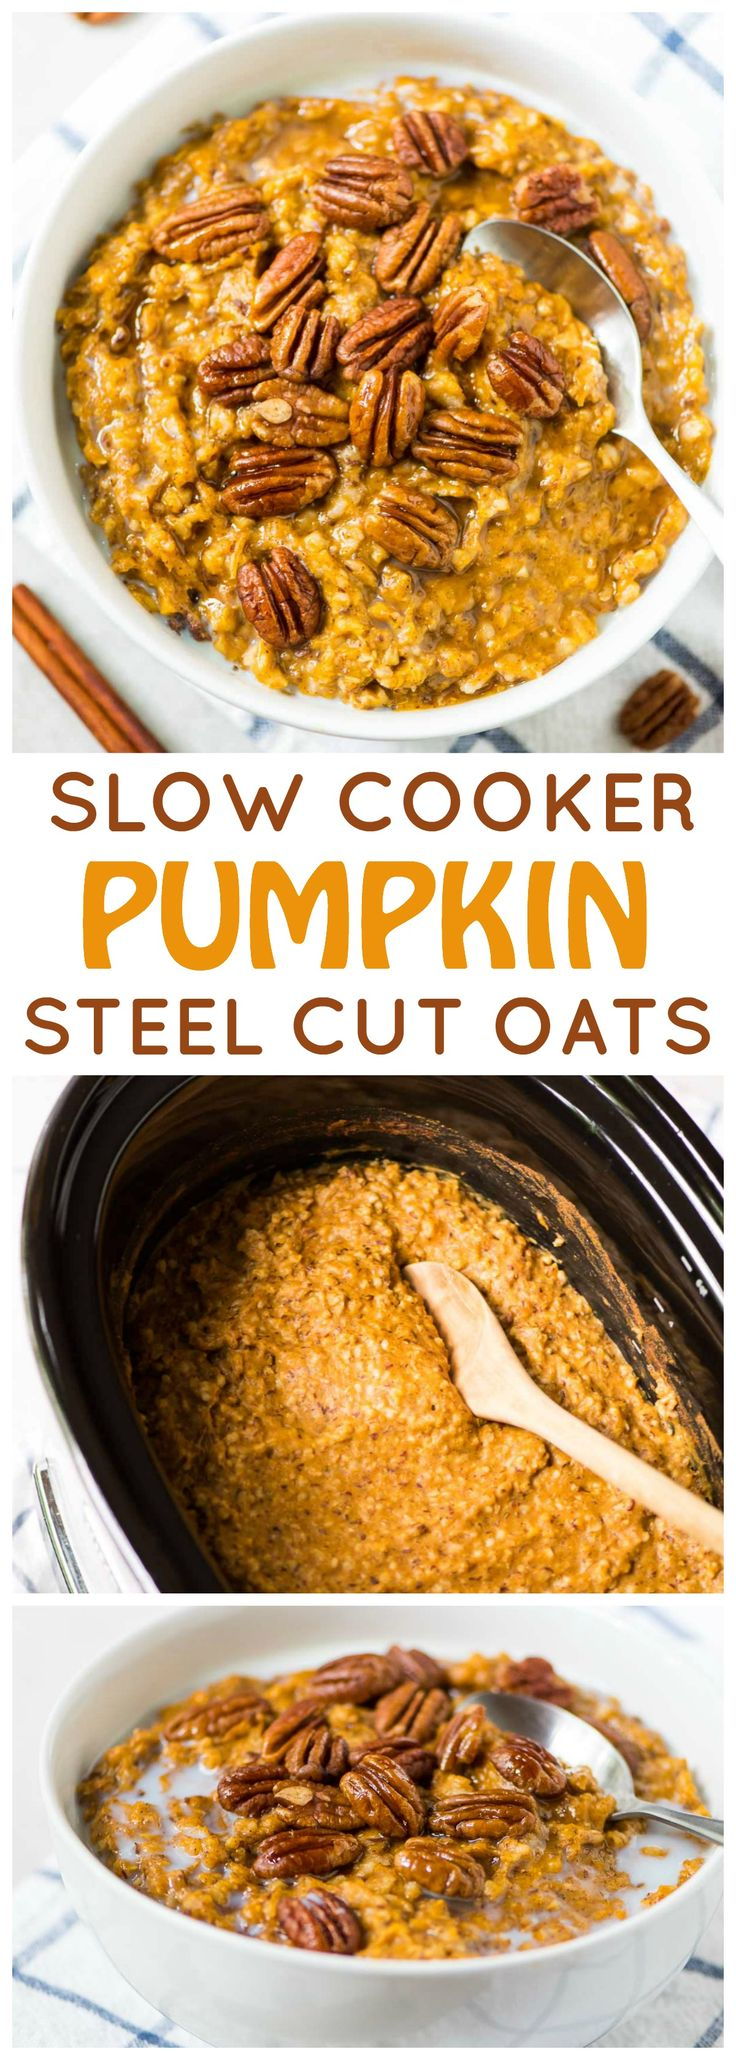 Pumpkin Overnight Oats ~ healthy crock pot steel cut oats made with warm spices, pumpkin and maple syrup. This recipe is easy to throw in the slow cooker before bed for an effortless breakfast that can last all week or feed a crowd! Recipe at wellplated.com | @wellplated